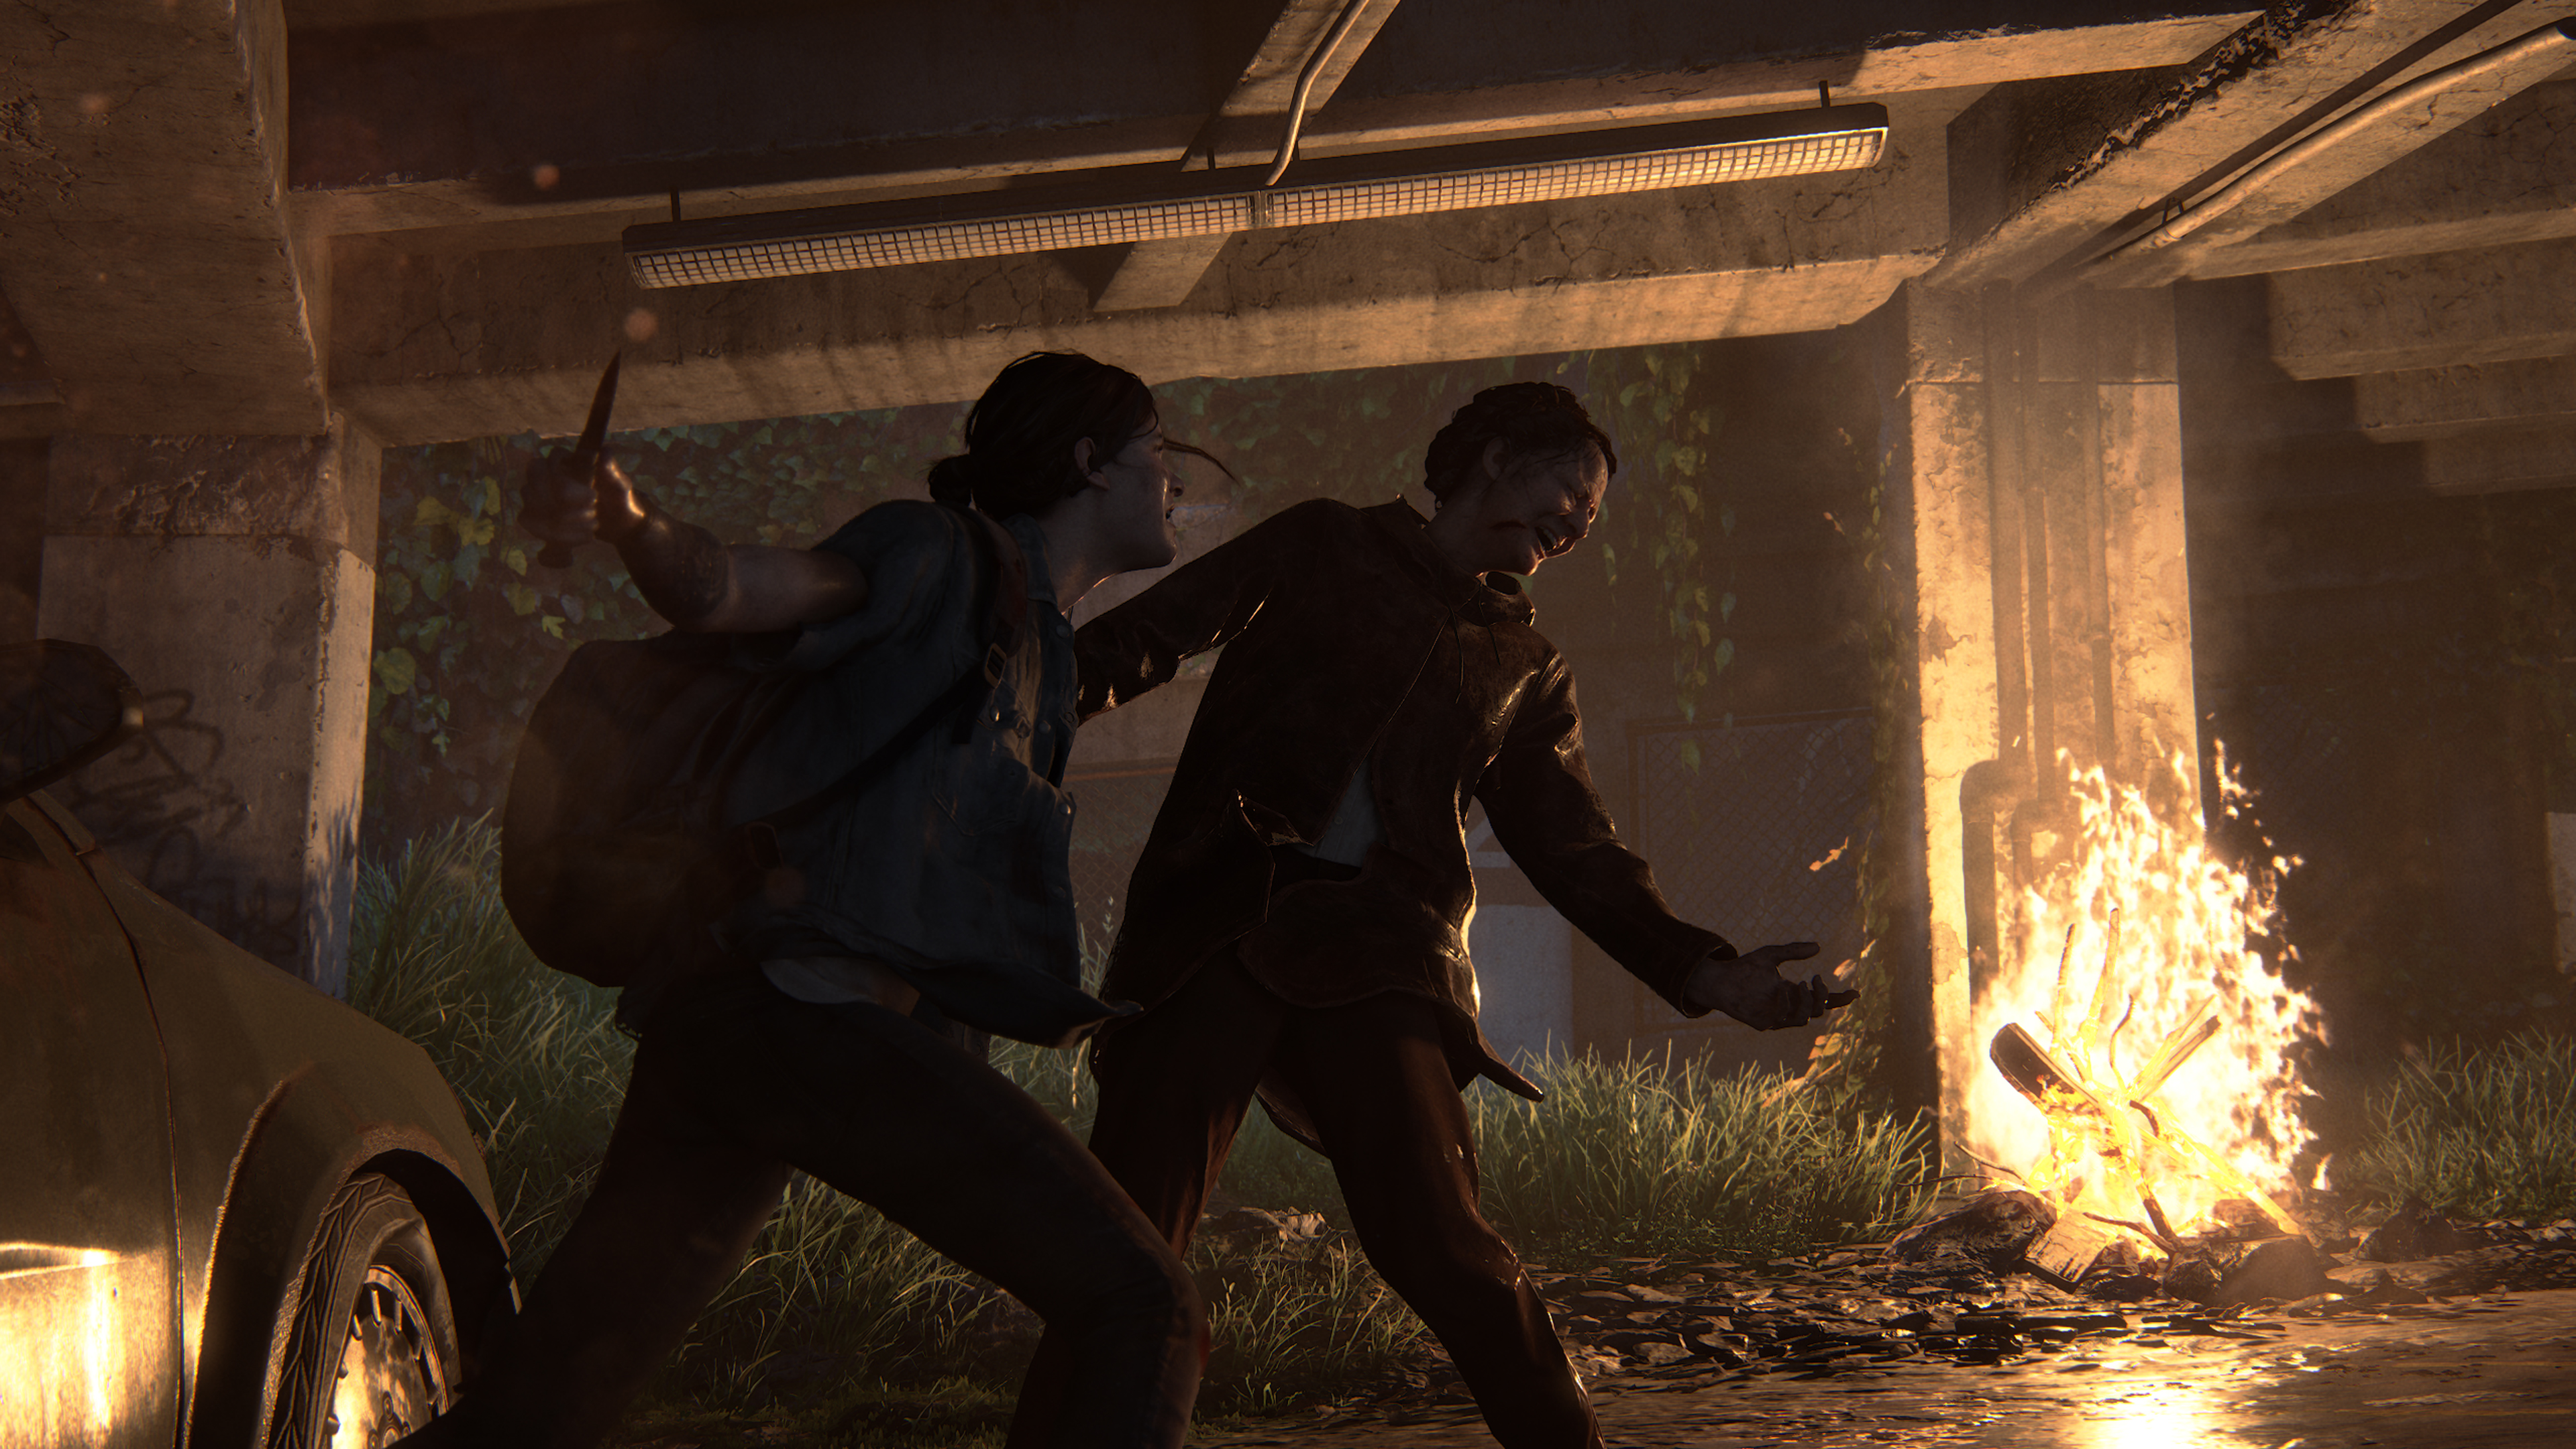 The Last of Us Part II will be a tale of revenge, its director says